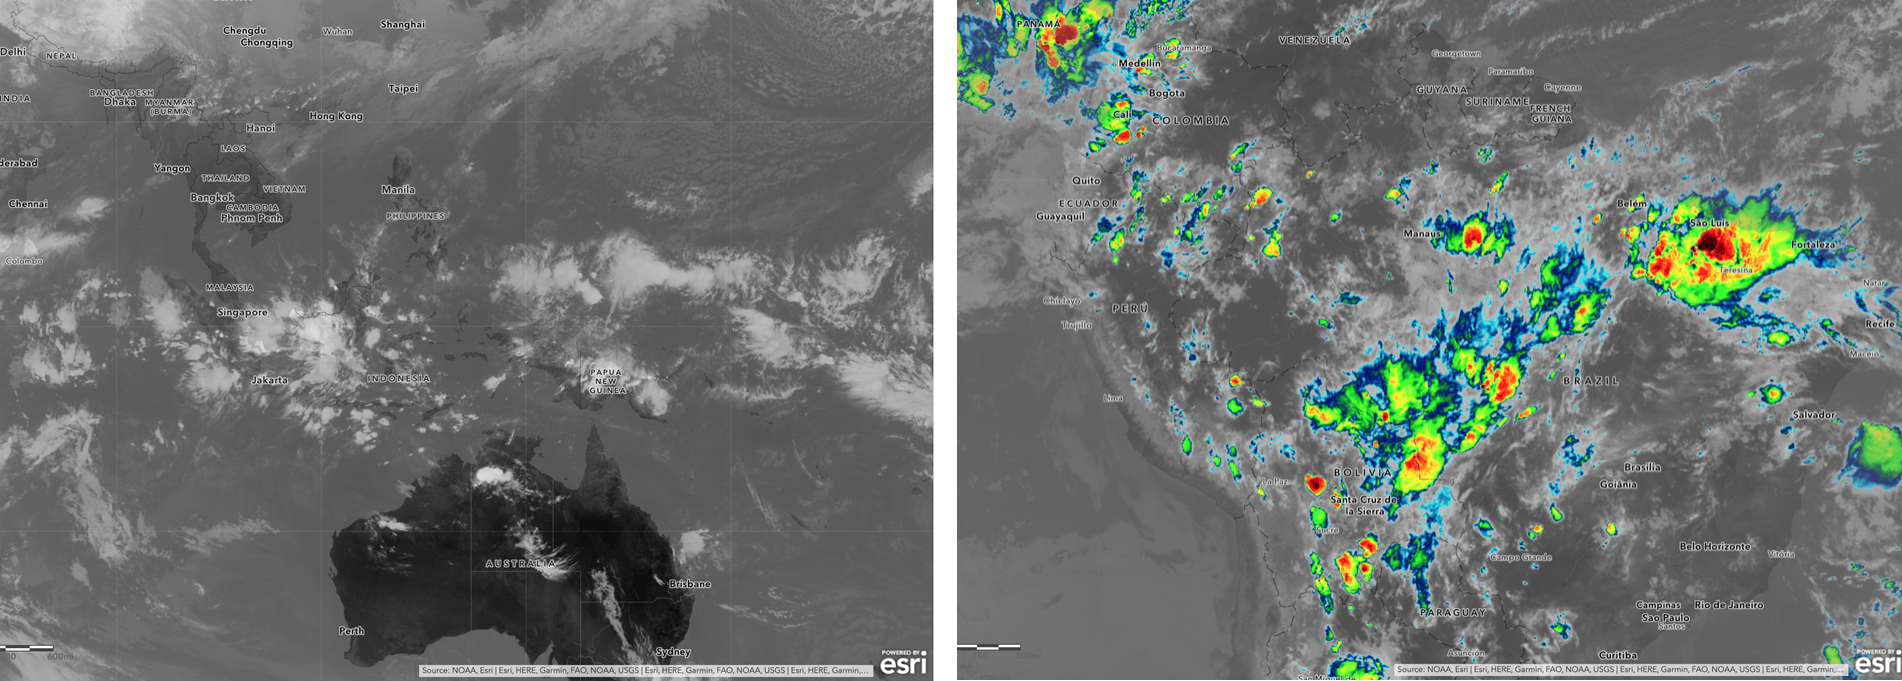 NOAA's infrared satellite imagery (black and white image) next to NOAA's colorized infrared satellite imagery (color image).